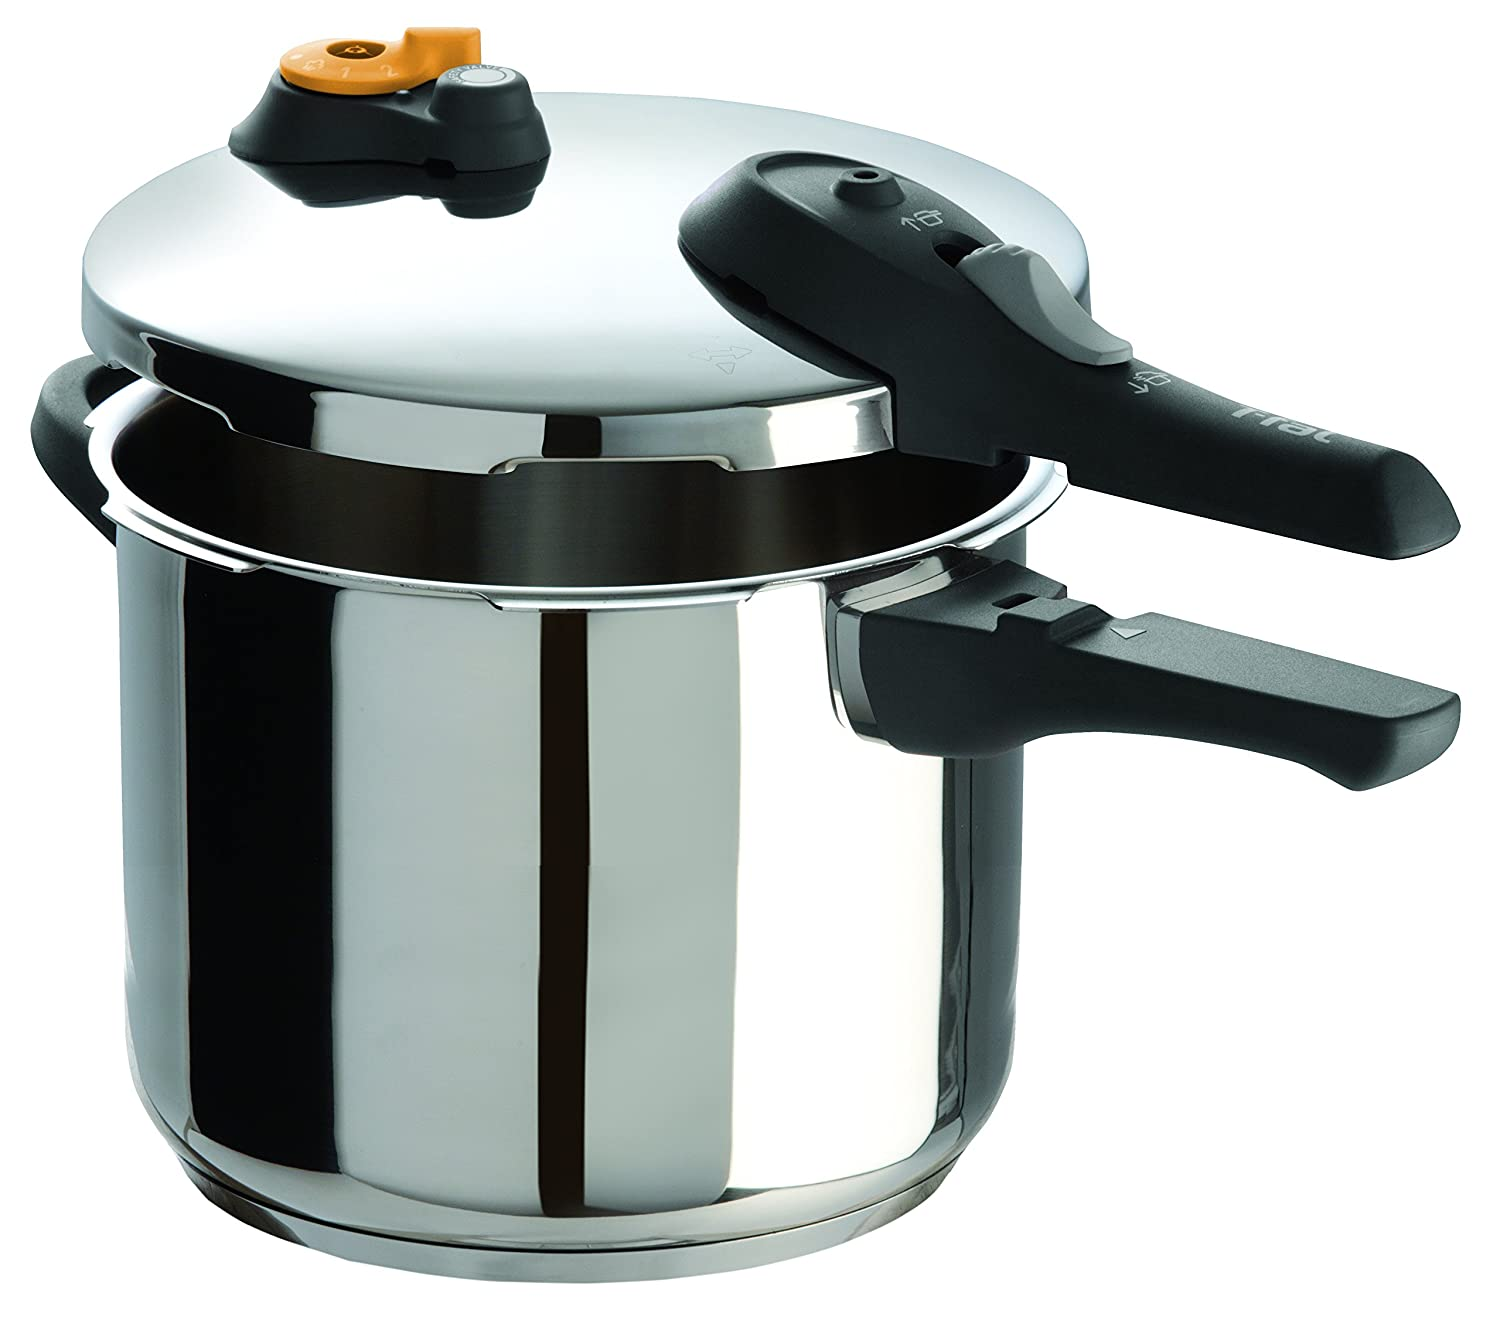 T-fal Stainless Steel 15-PSI Pressure Cooker, 4-Quart - Model #P25142